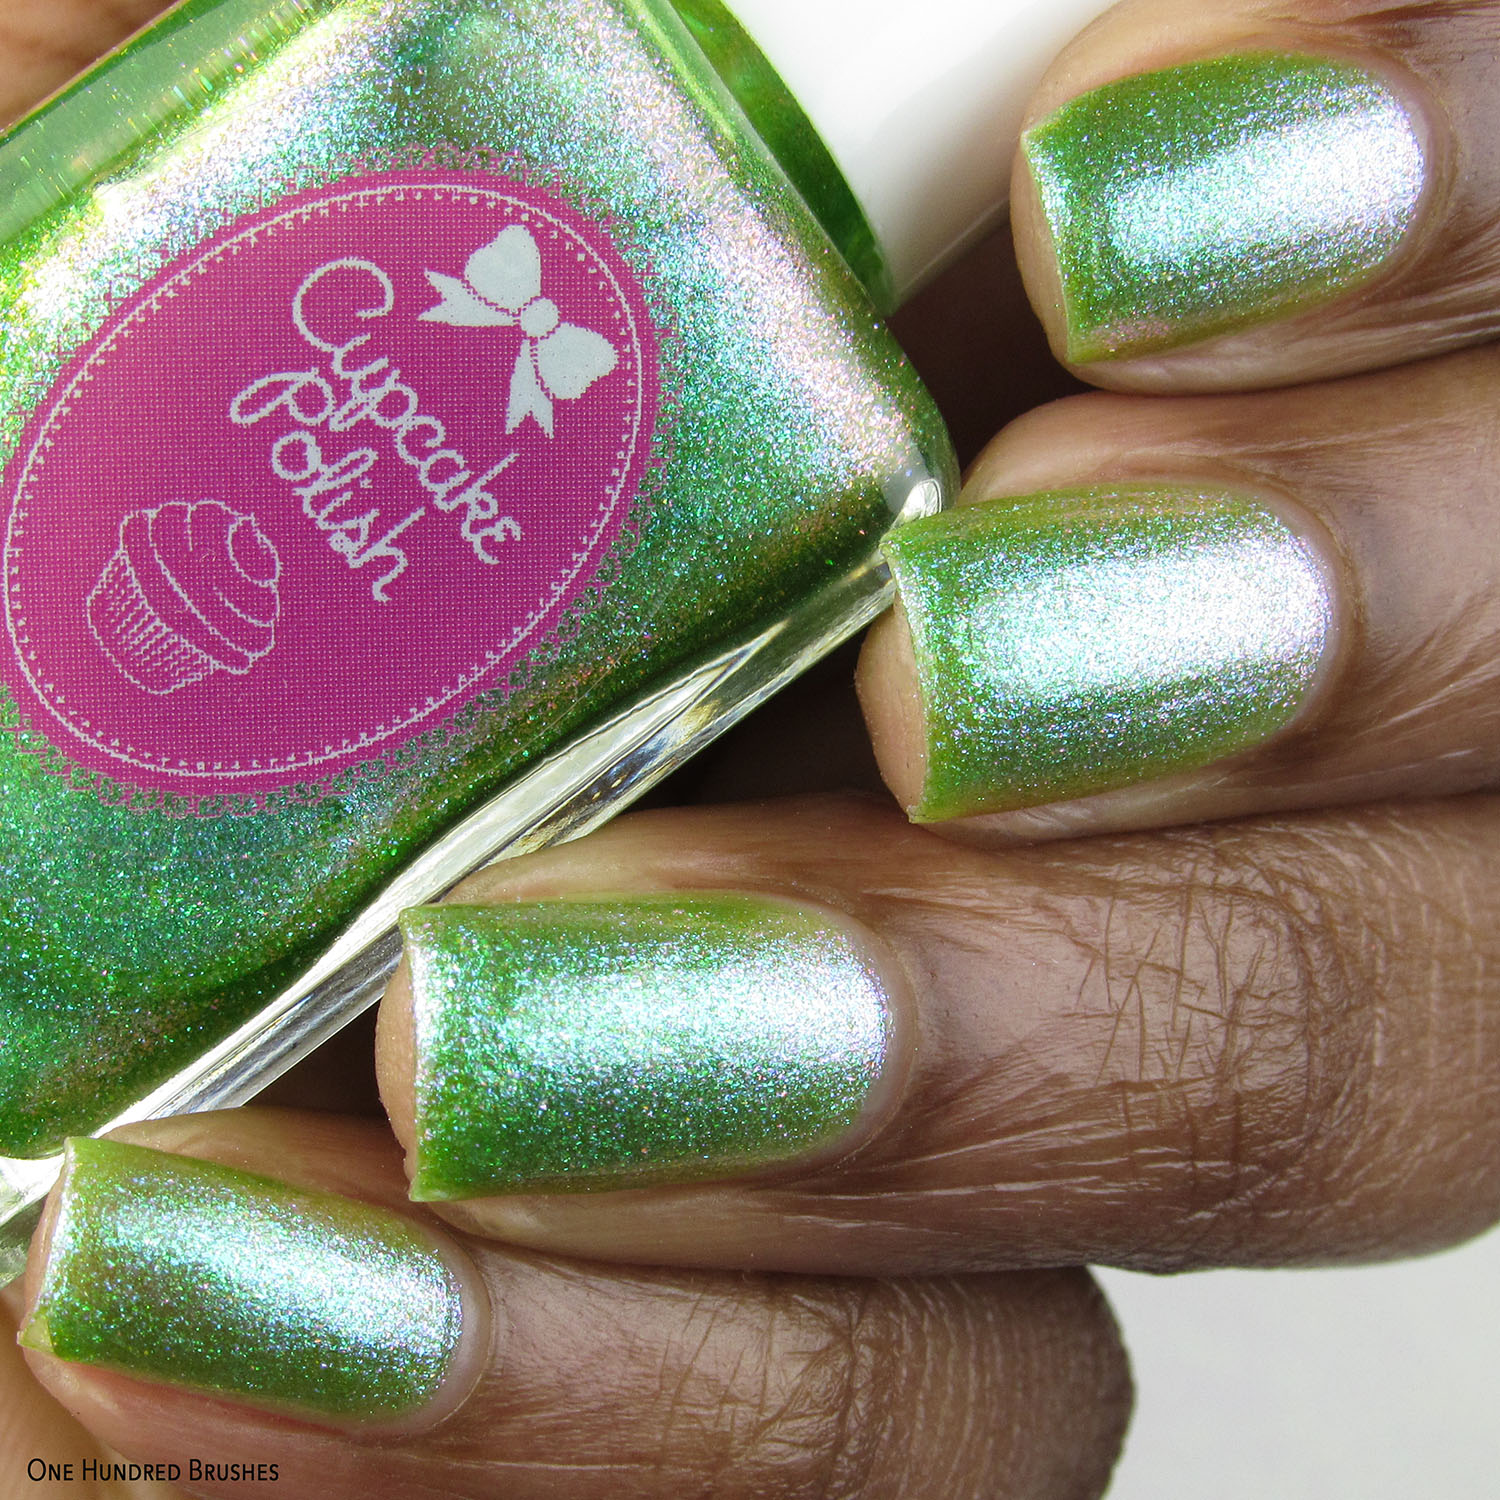 Eldhhraun - Cupcake Polish - New Iceland Collection January 2020